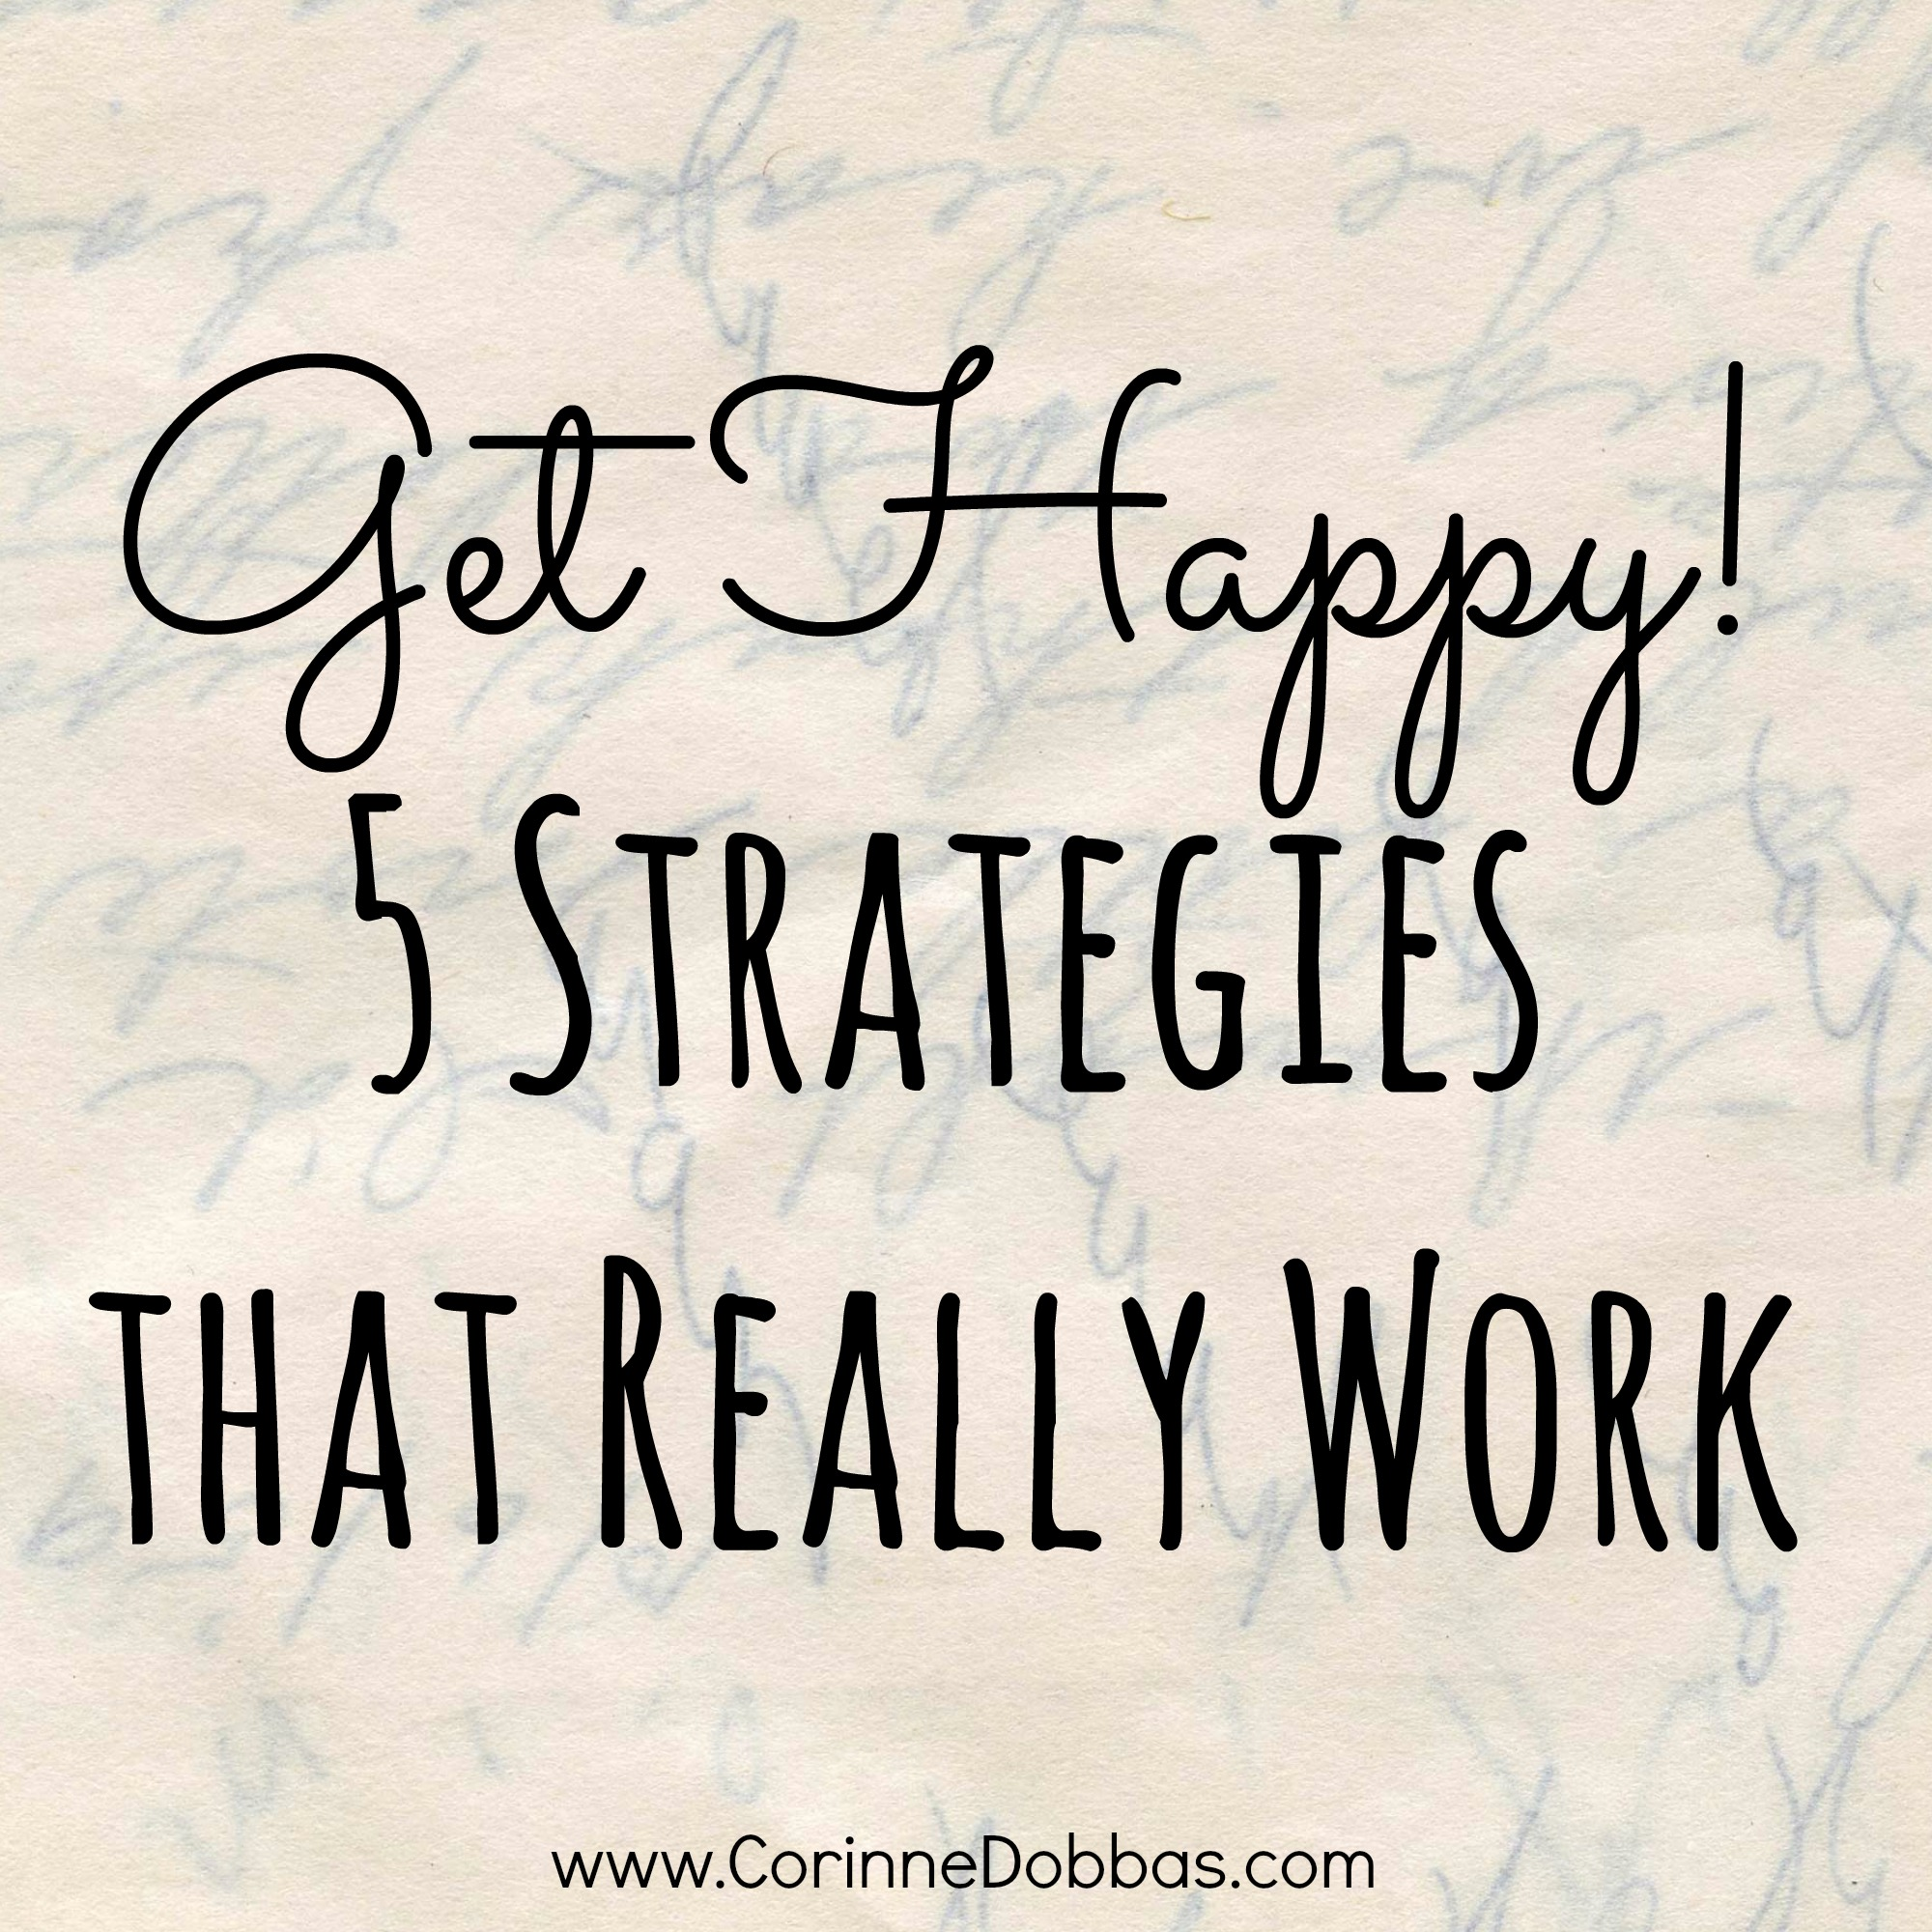 Get happy! 5 strategies that really work